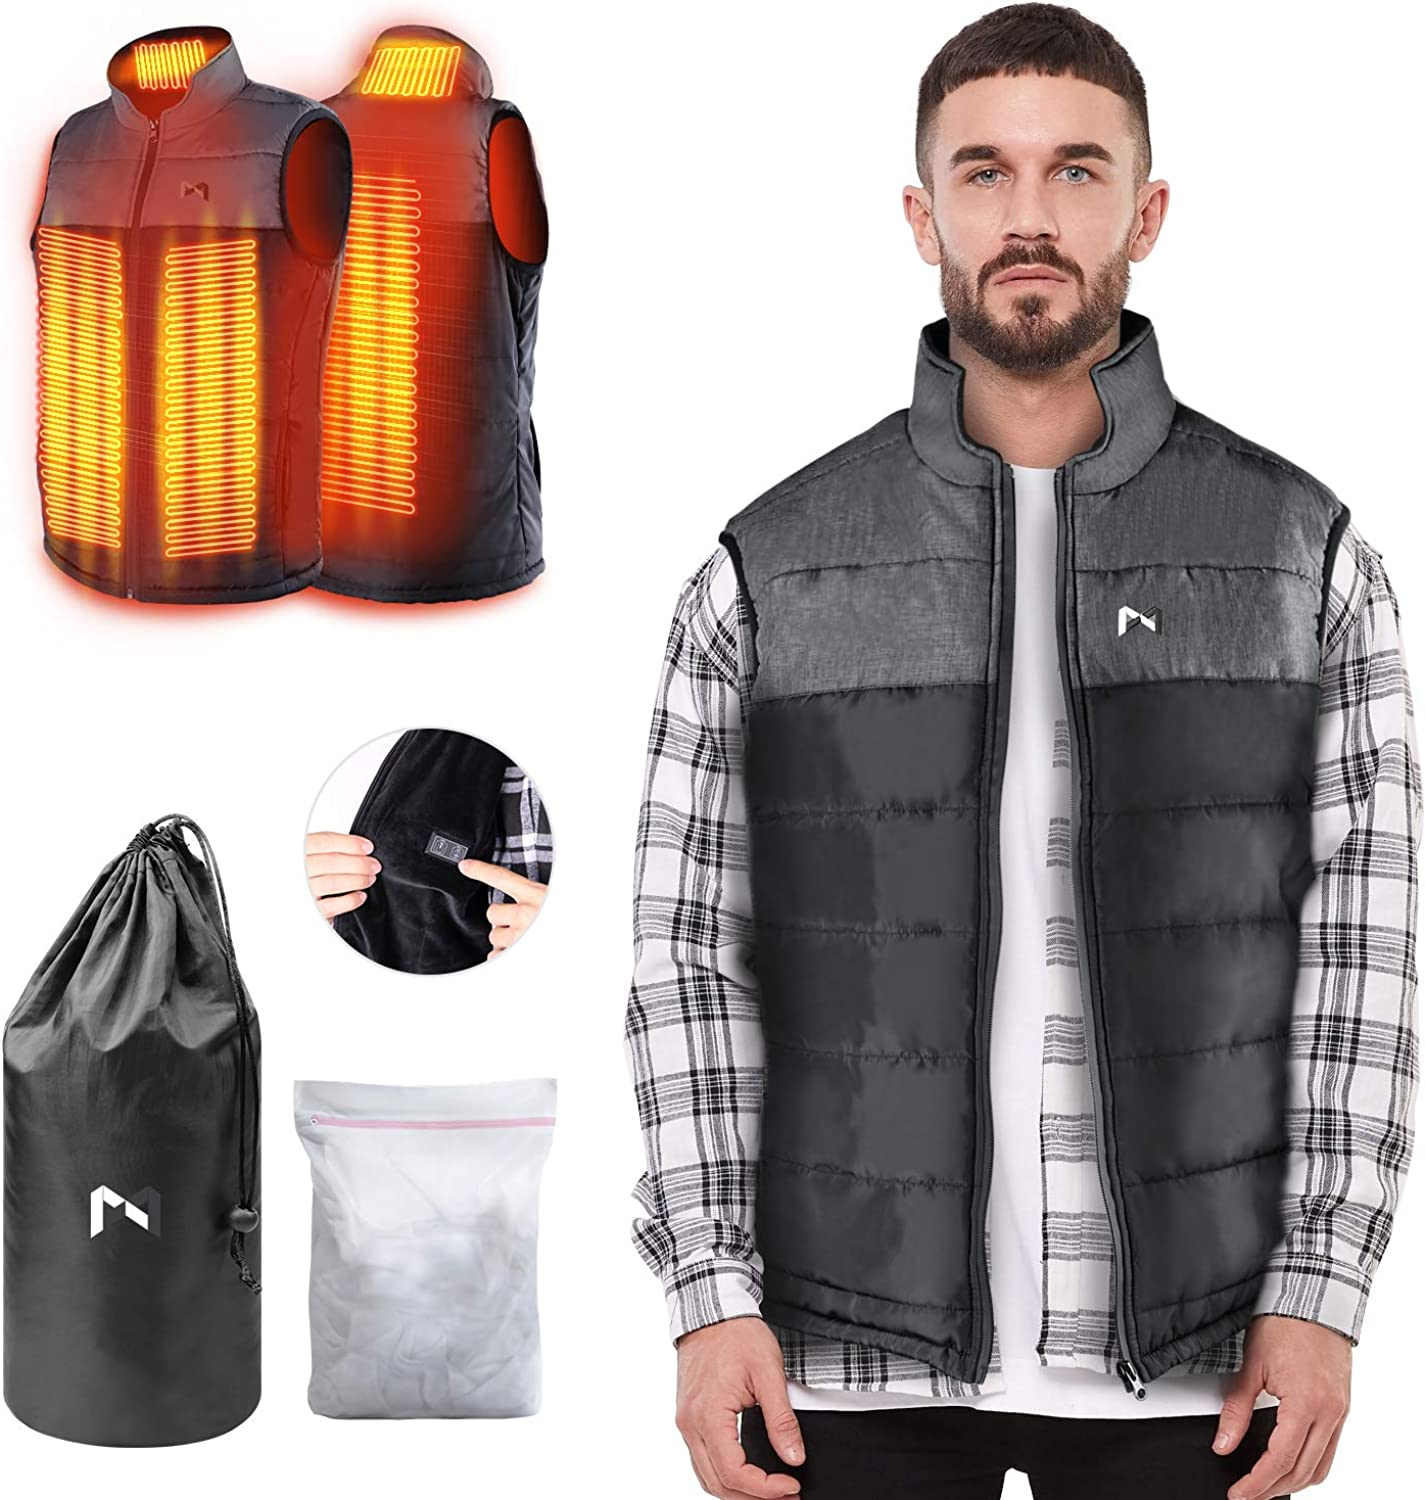 Waterproof and Windproof in Winter DFANCE Hooded Heated Vest Men Women with 9 Heating Zones Instant Warmth Heated Jacket with 3 Heating Levels USB Electric Heated Gilet